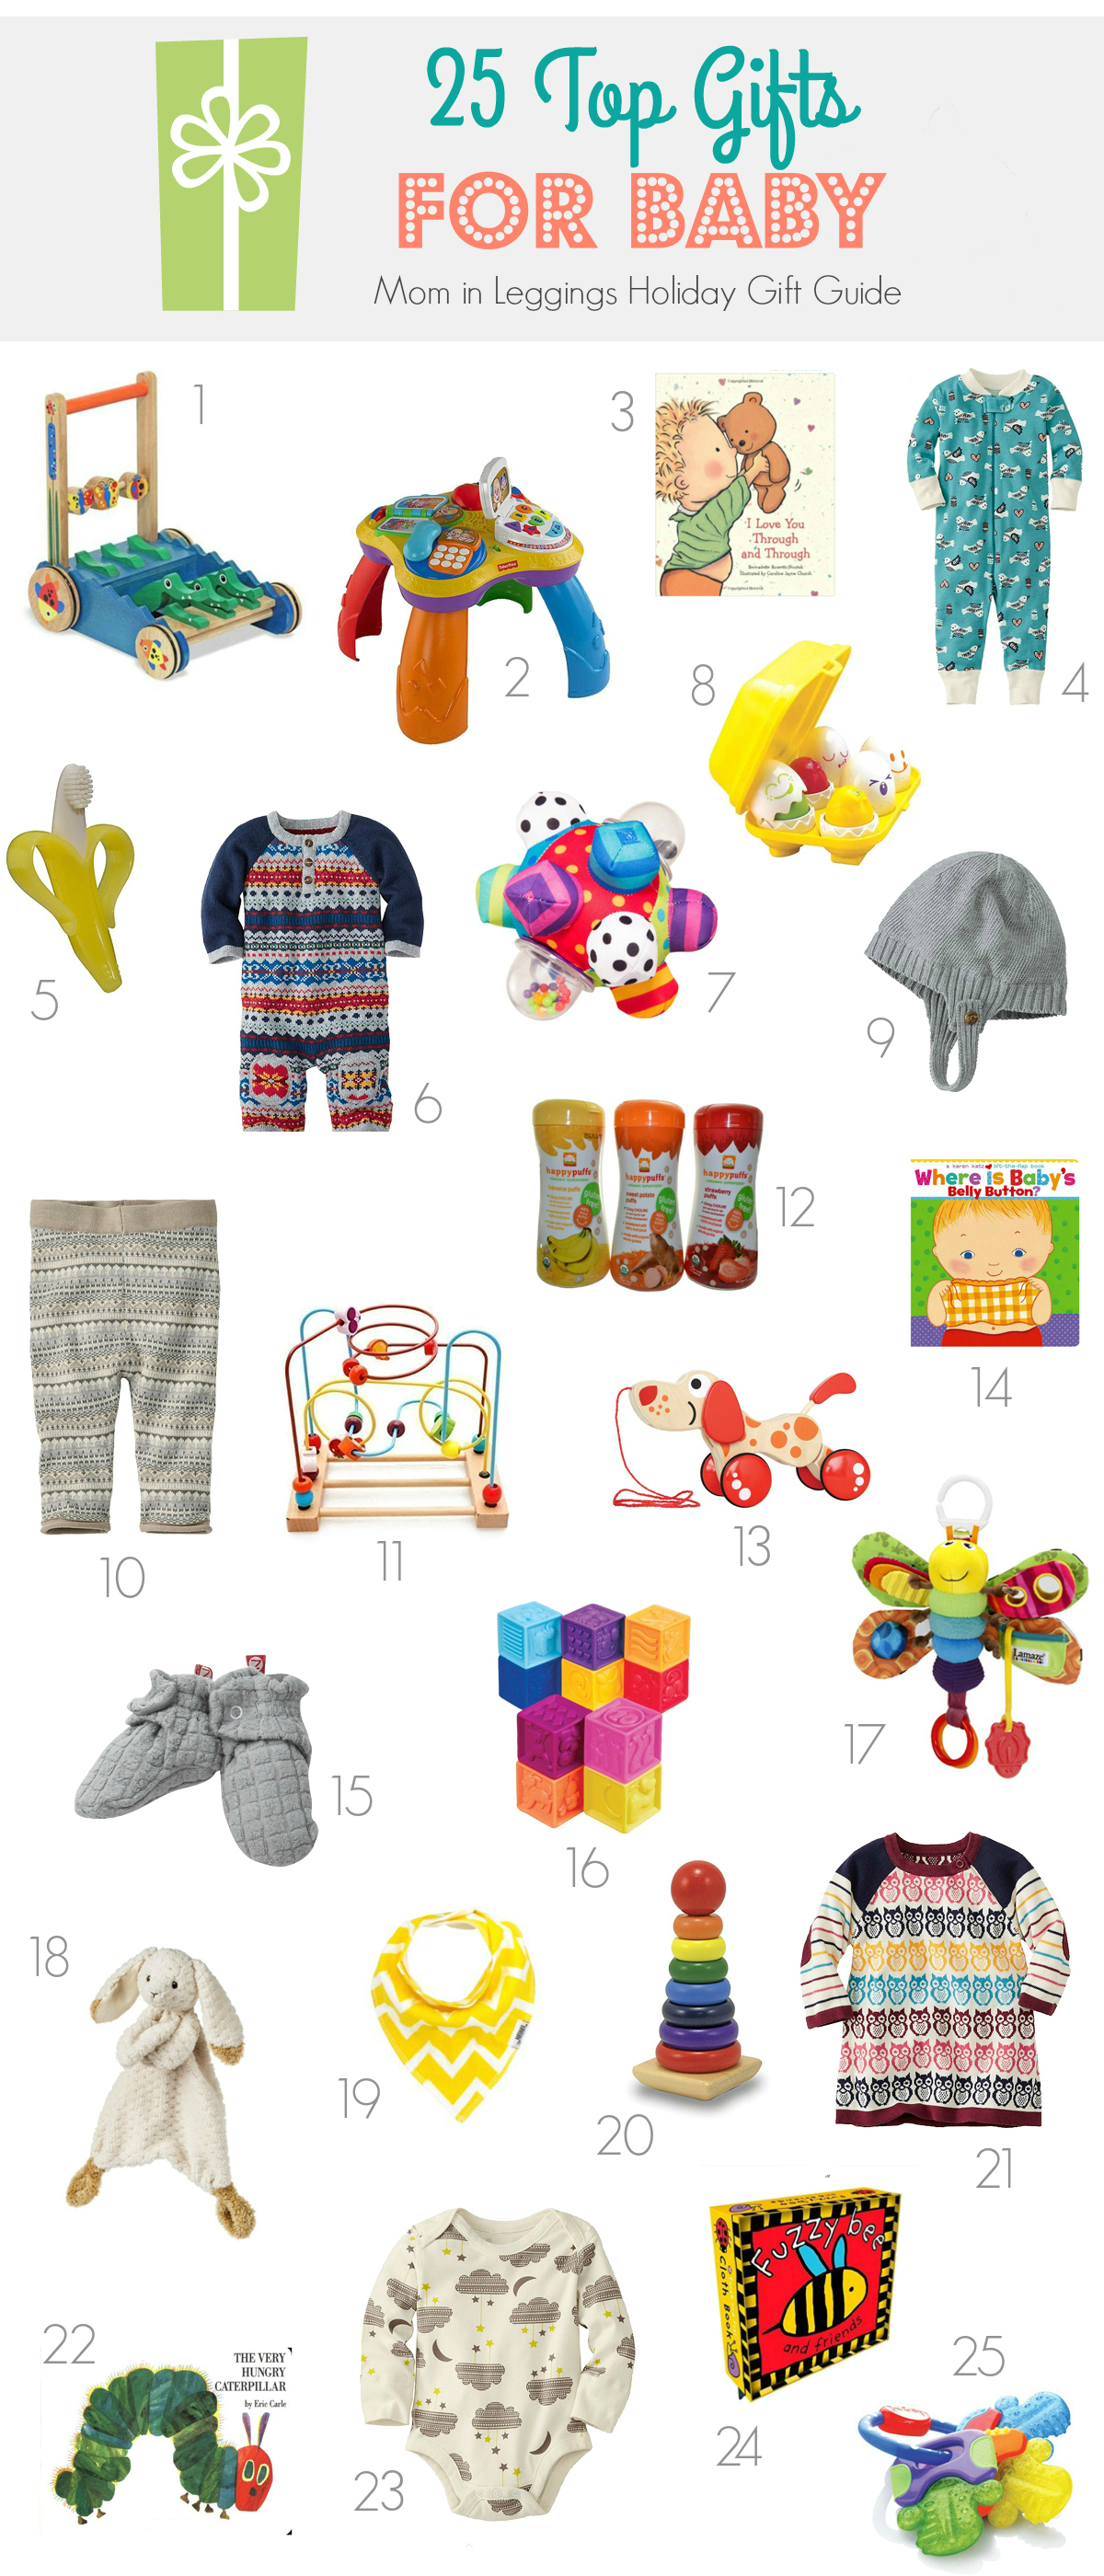 25 Top Gifts for Baby